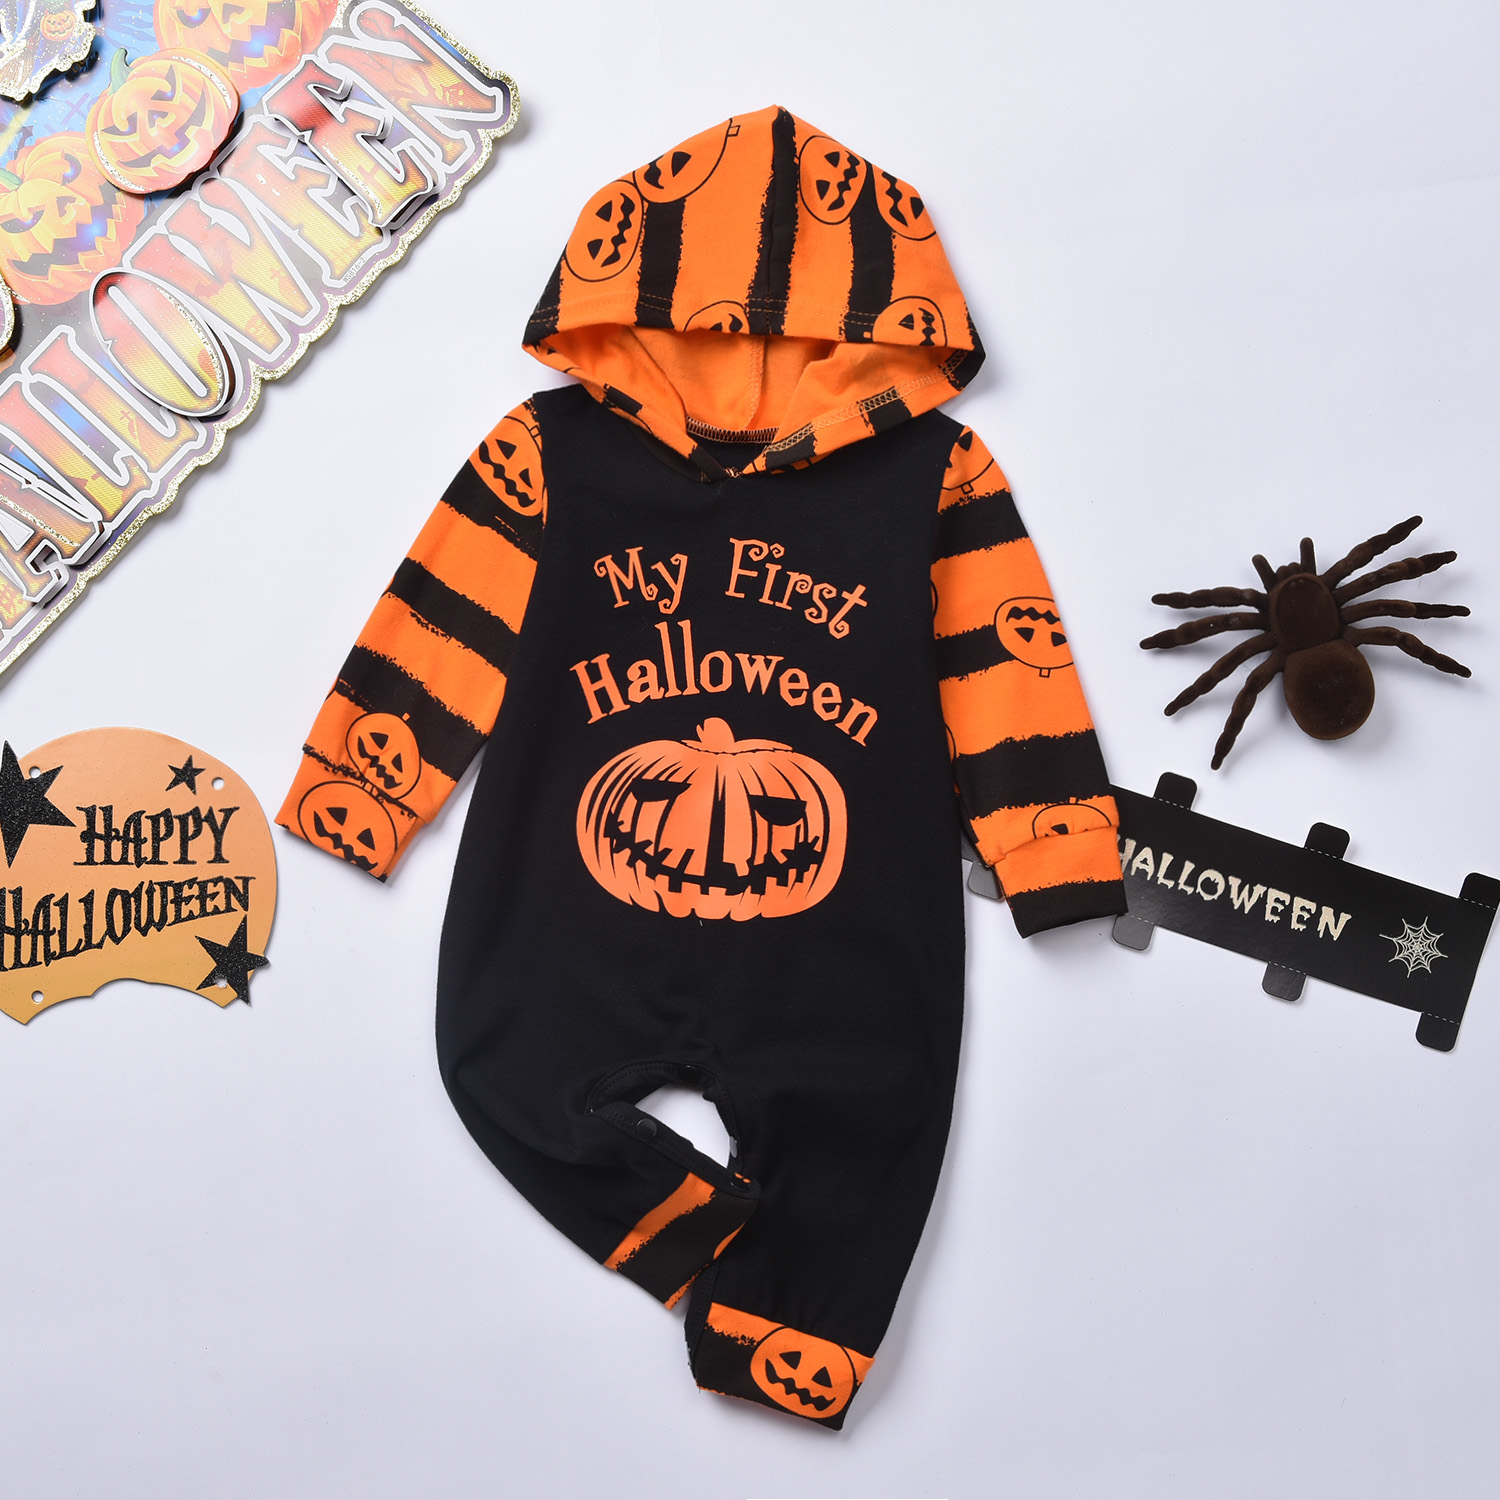 Pudcoco Newborn Baby Boy Clothes My 1st Halloween Print Cotton Hooded   Romper   Jumpsuit One-Piece Outfit Halloween Clothes